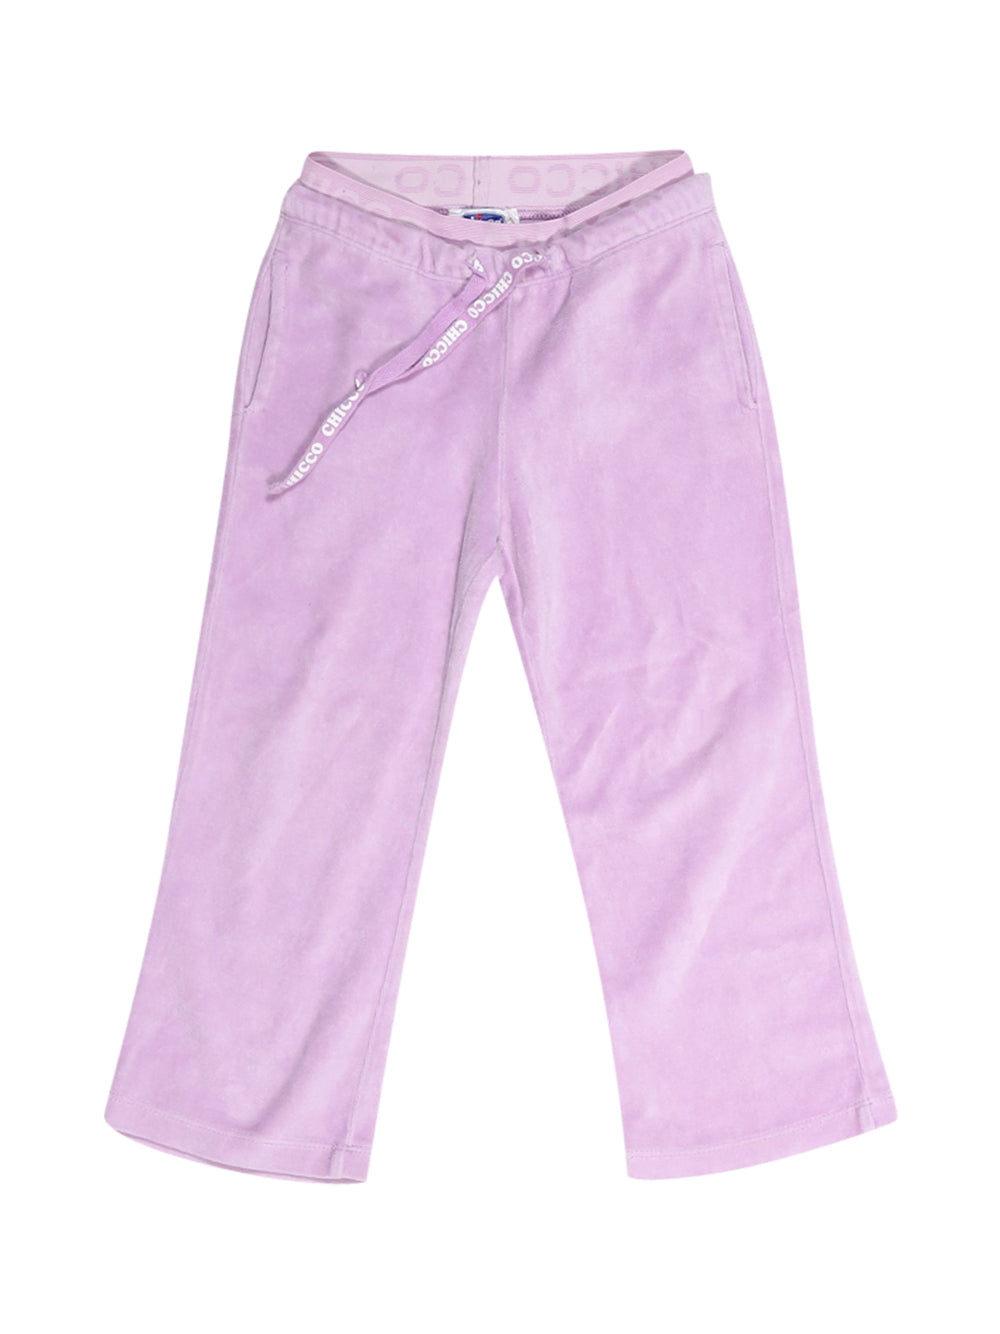 Front photo of Preloved Chicco Pink Girl's trousers - size 18-24 mths